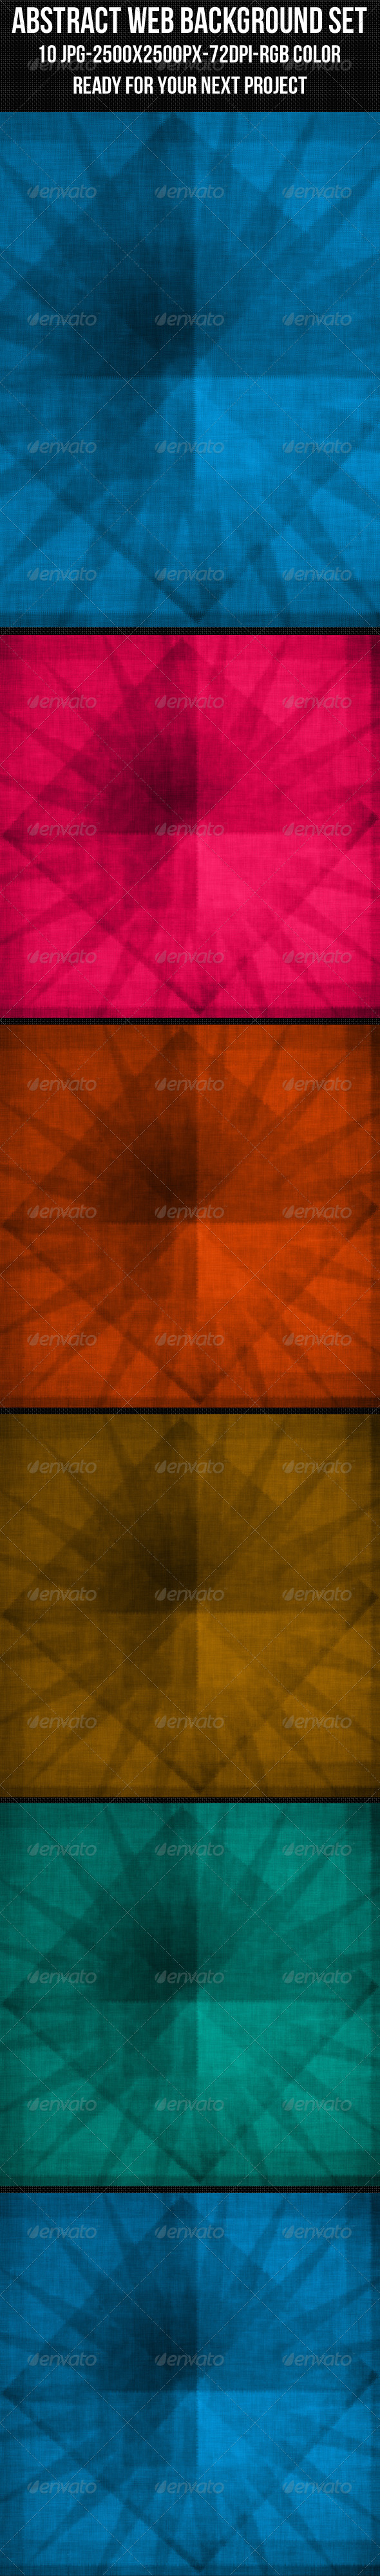 Abstract Web Background Set - Abstract Backgrounds